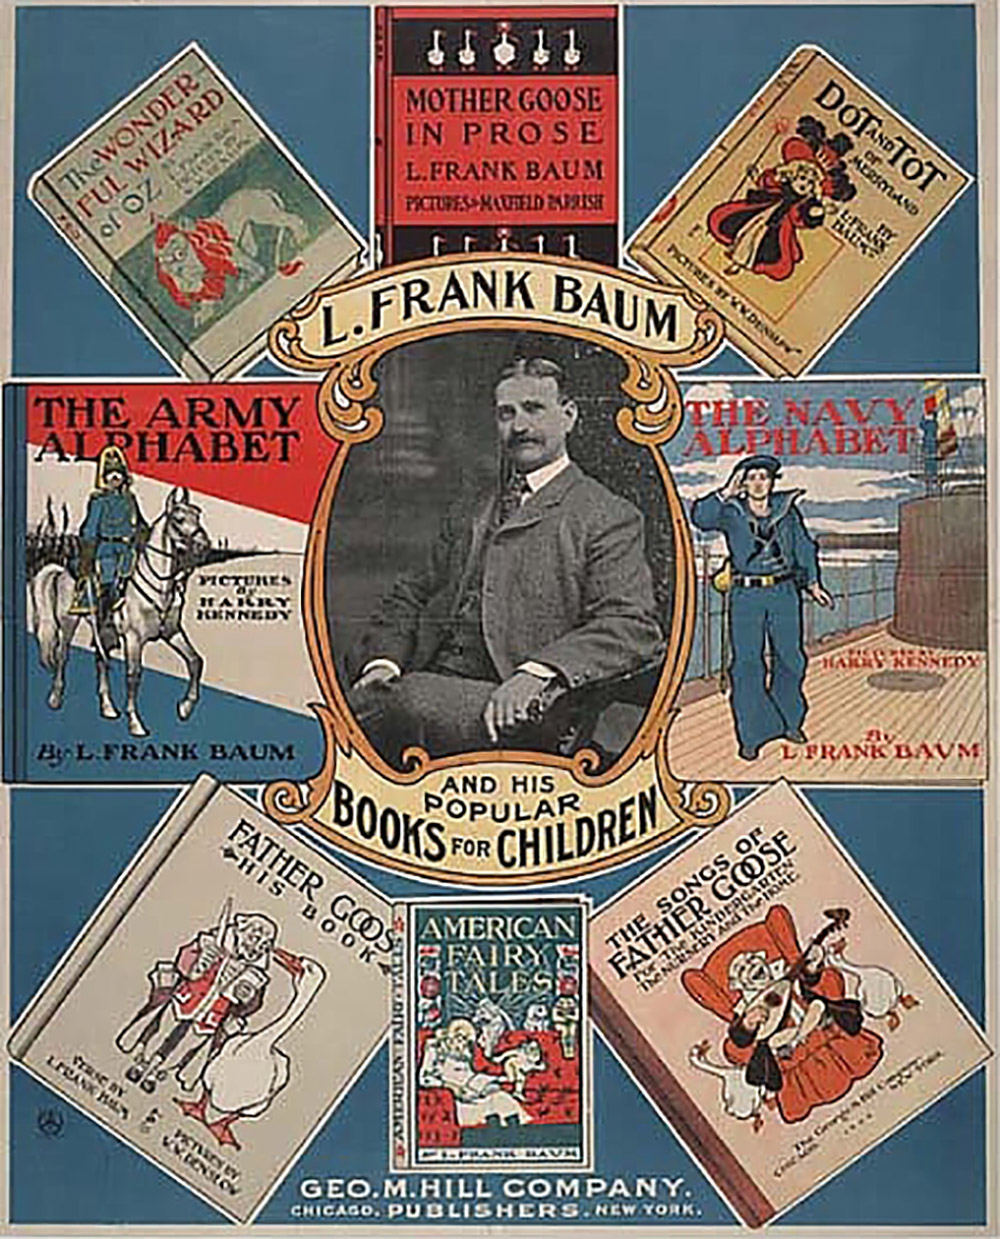 poster of Frank L. Baum and his children's book covers